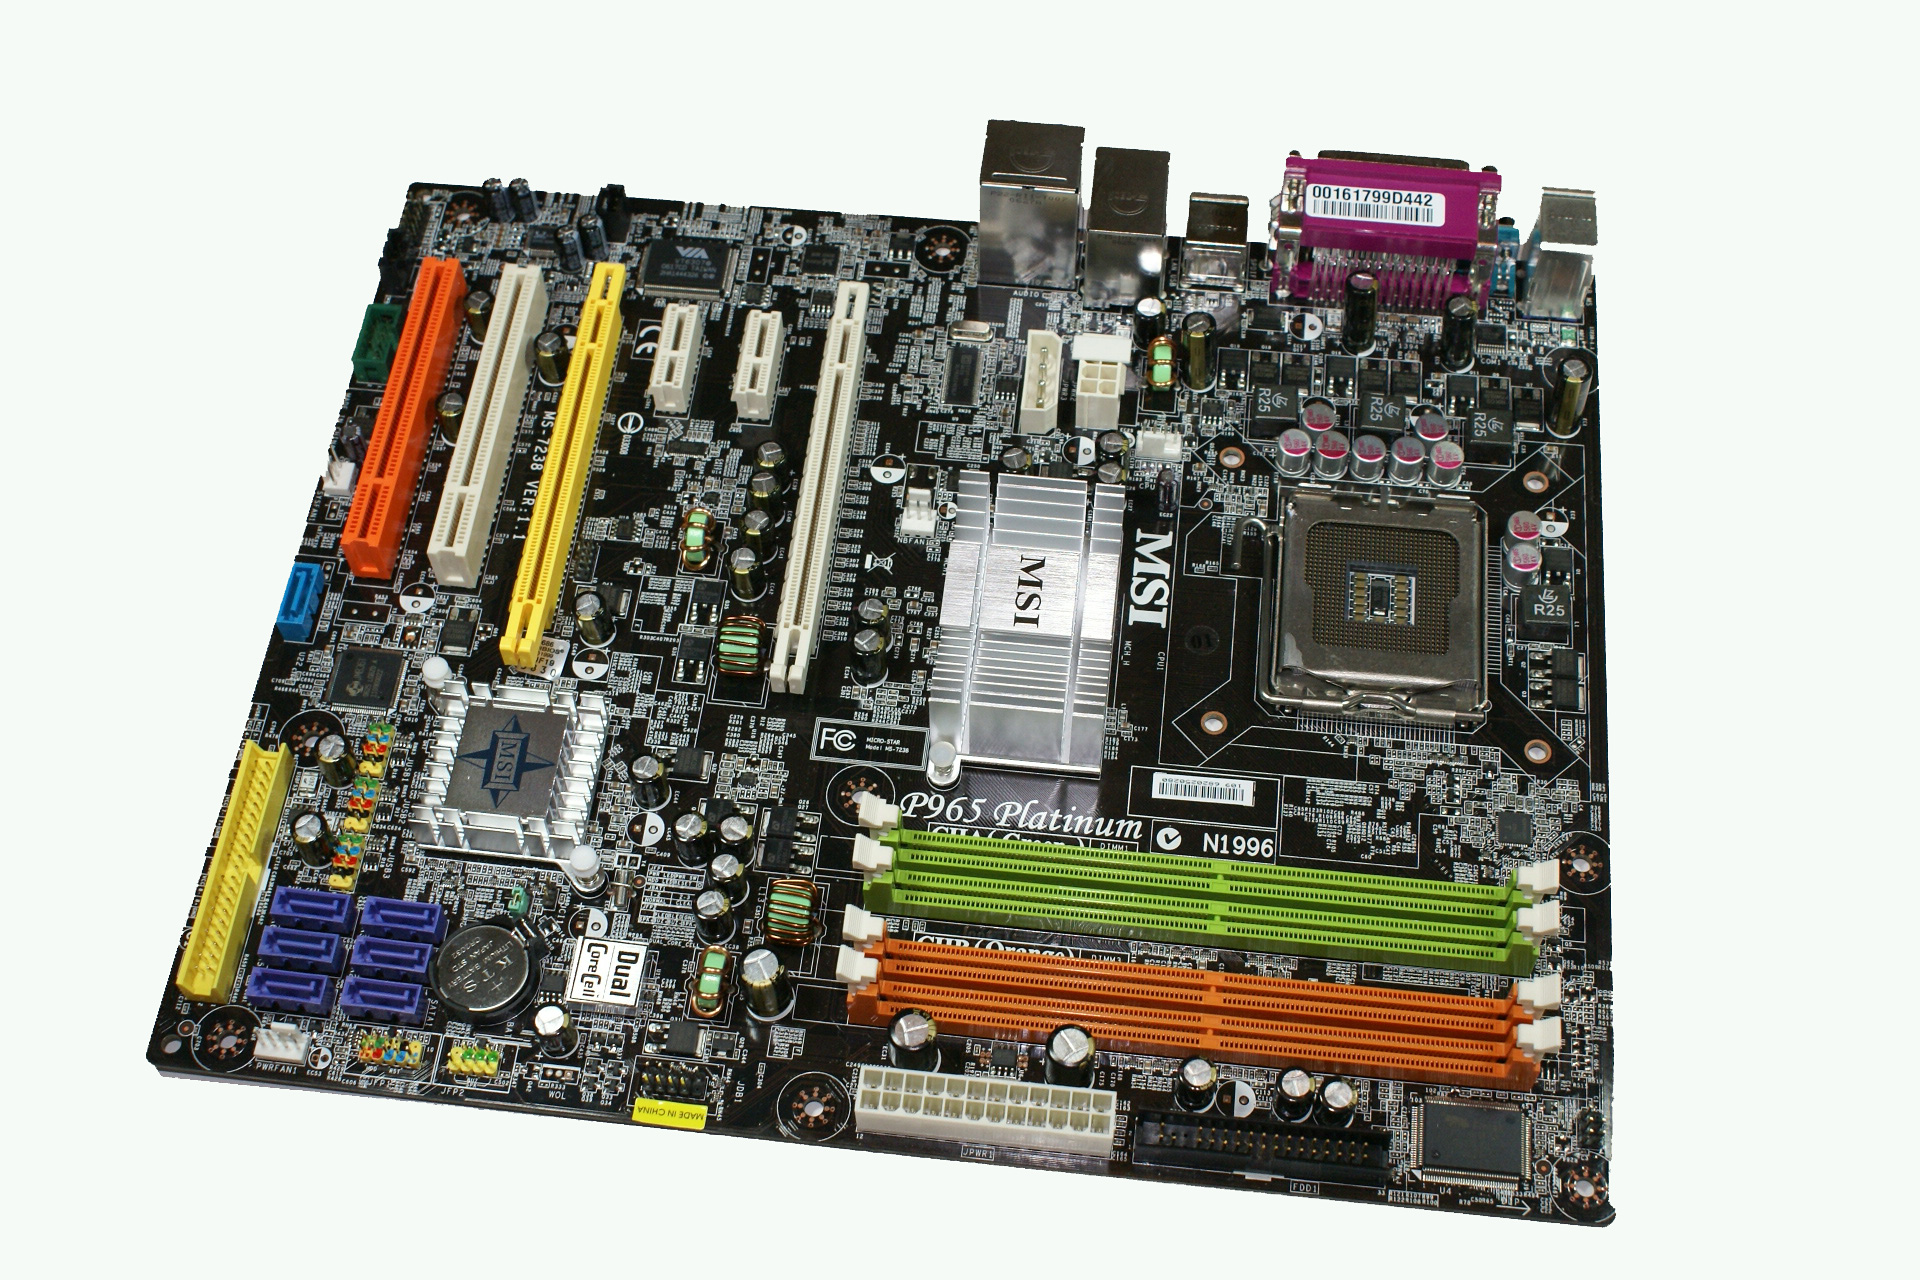 msi p965 platinum: board layout and features - intel p965: msi p965  platinum and ecs px1 extreme